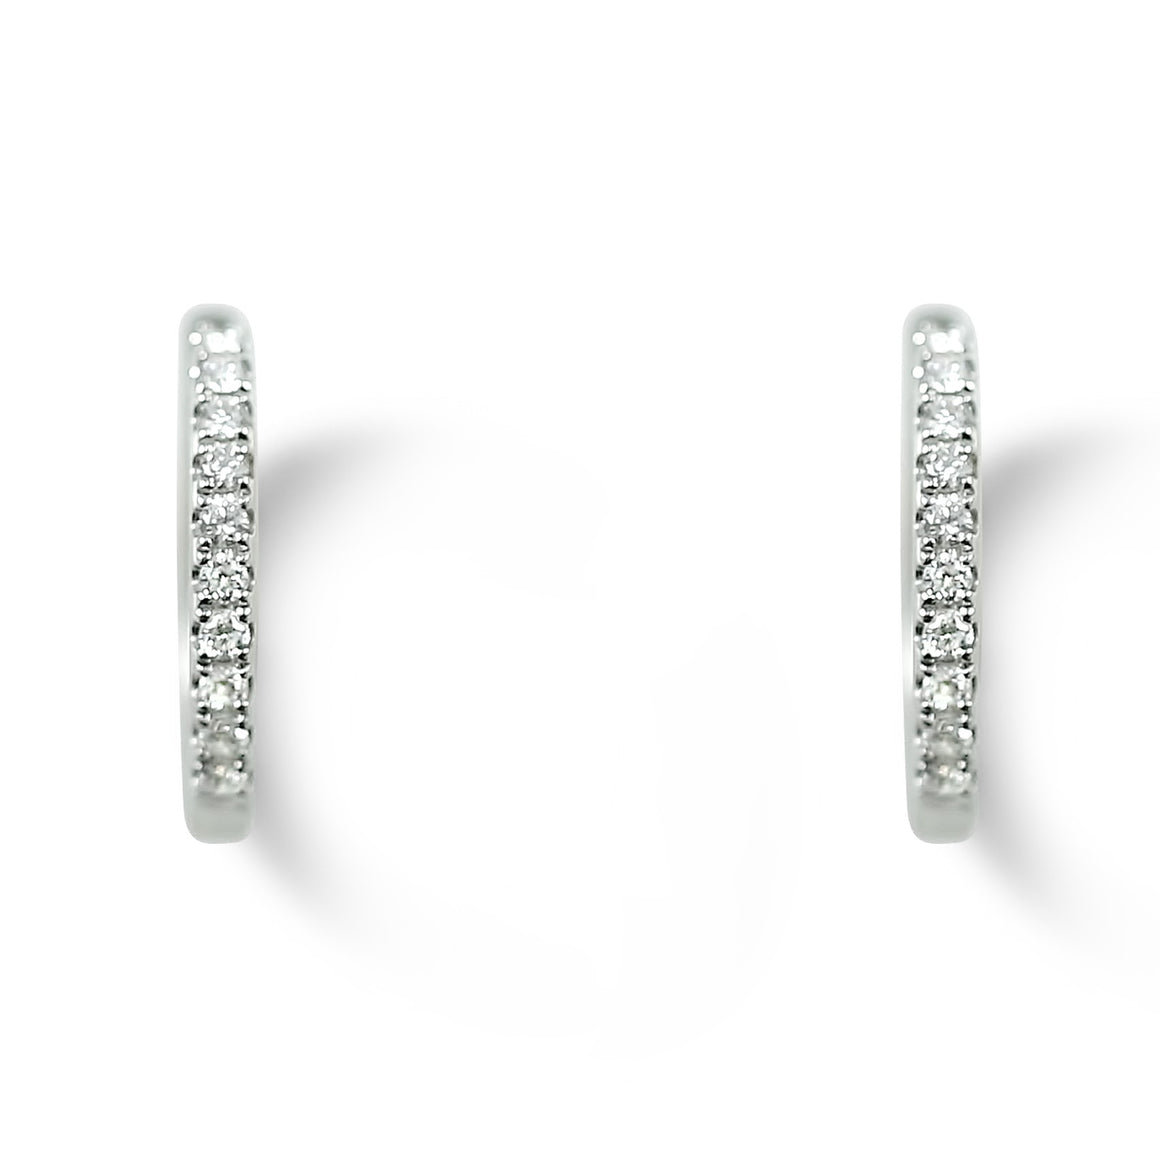 14k white gold oval diamond huggie earrings dainty hoops